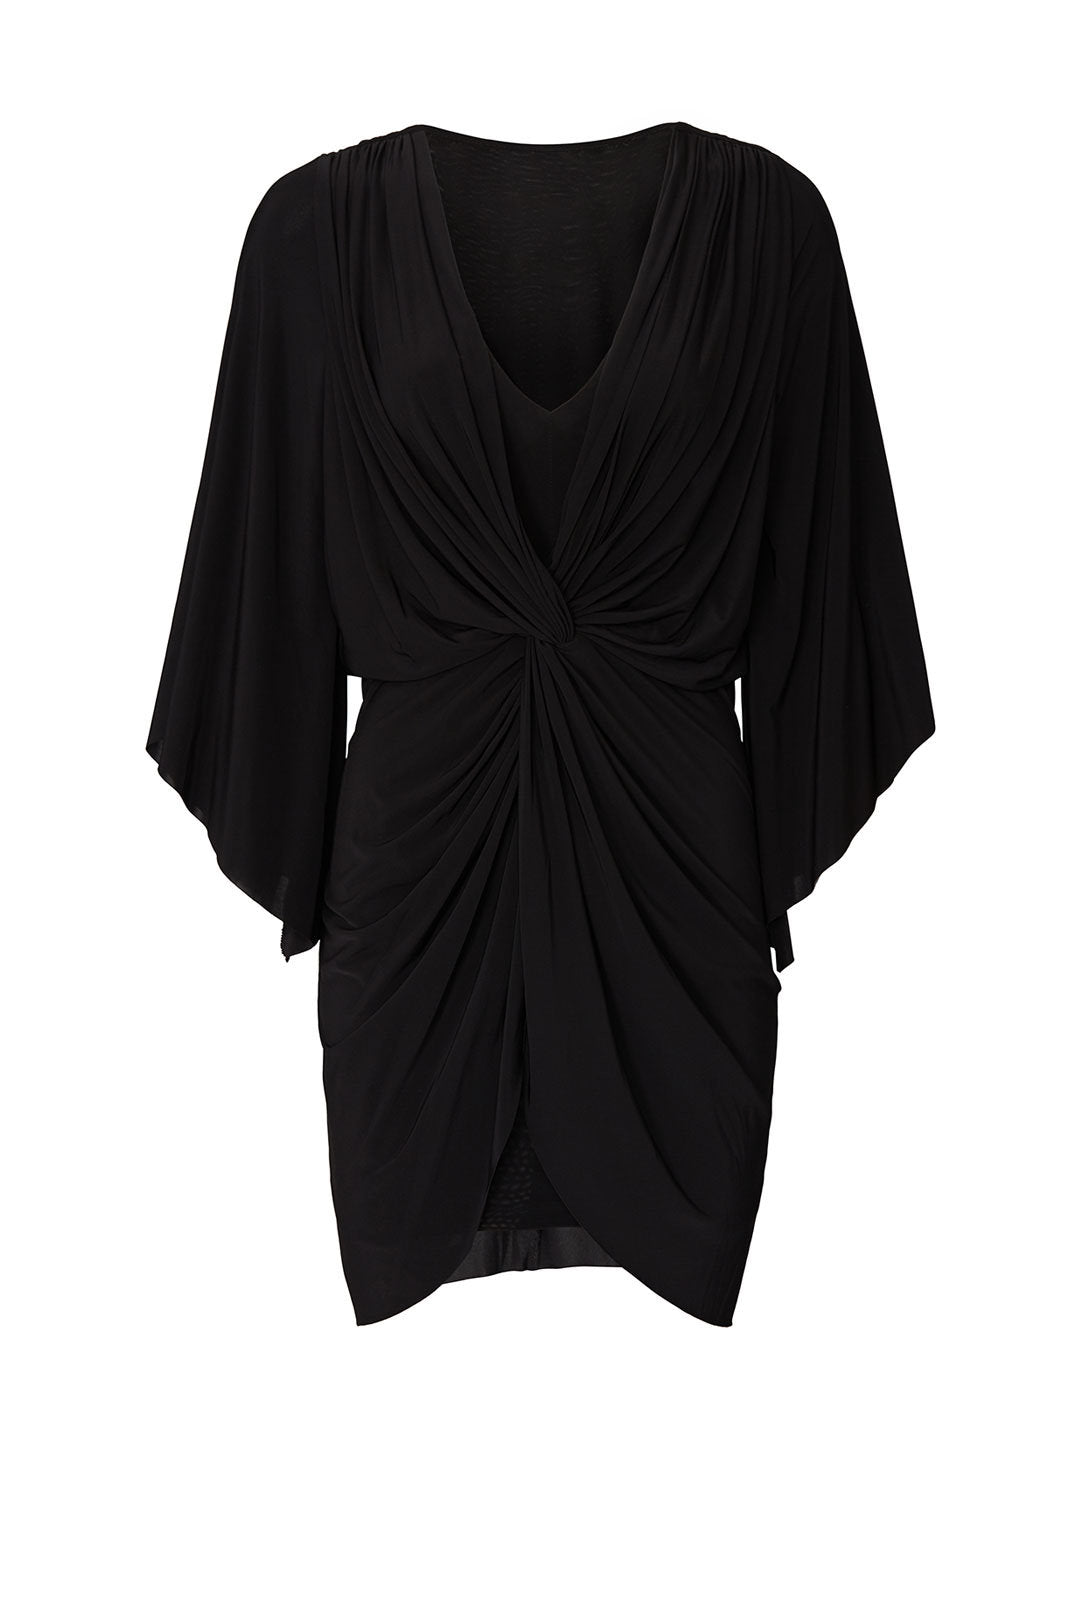 Teget Dress in Black